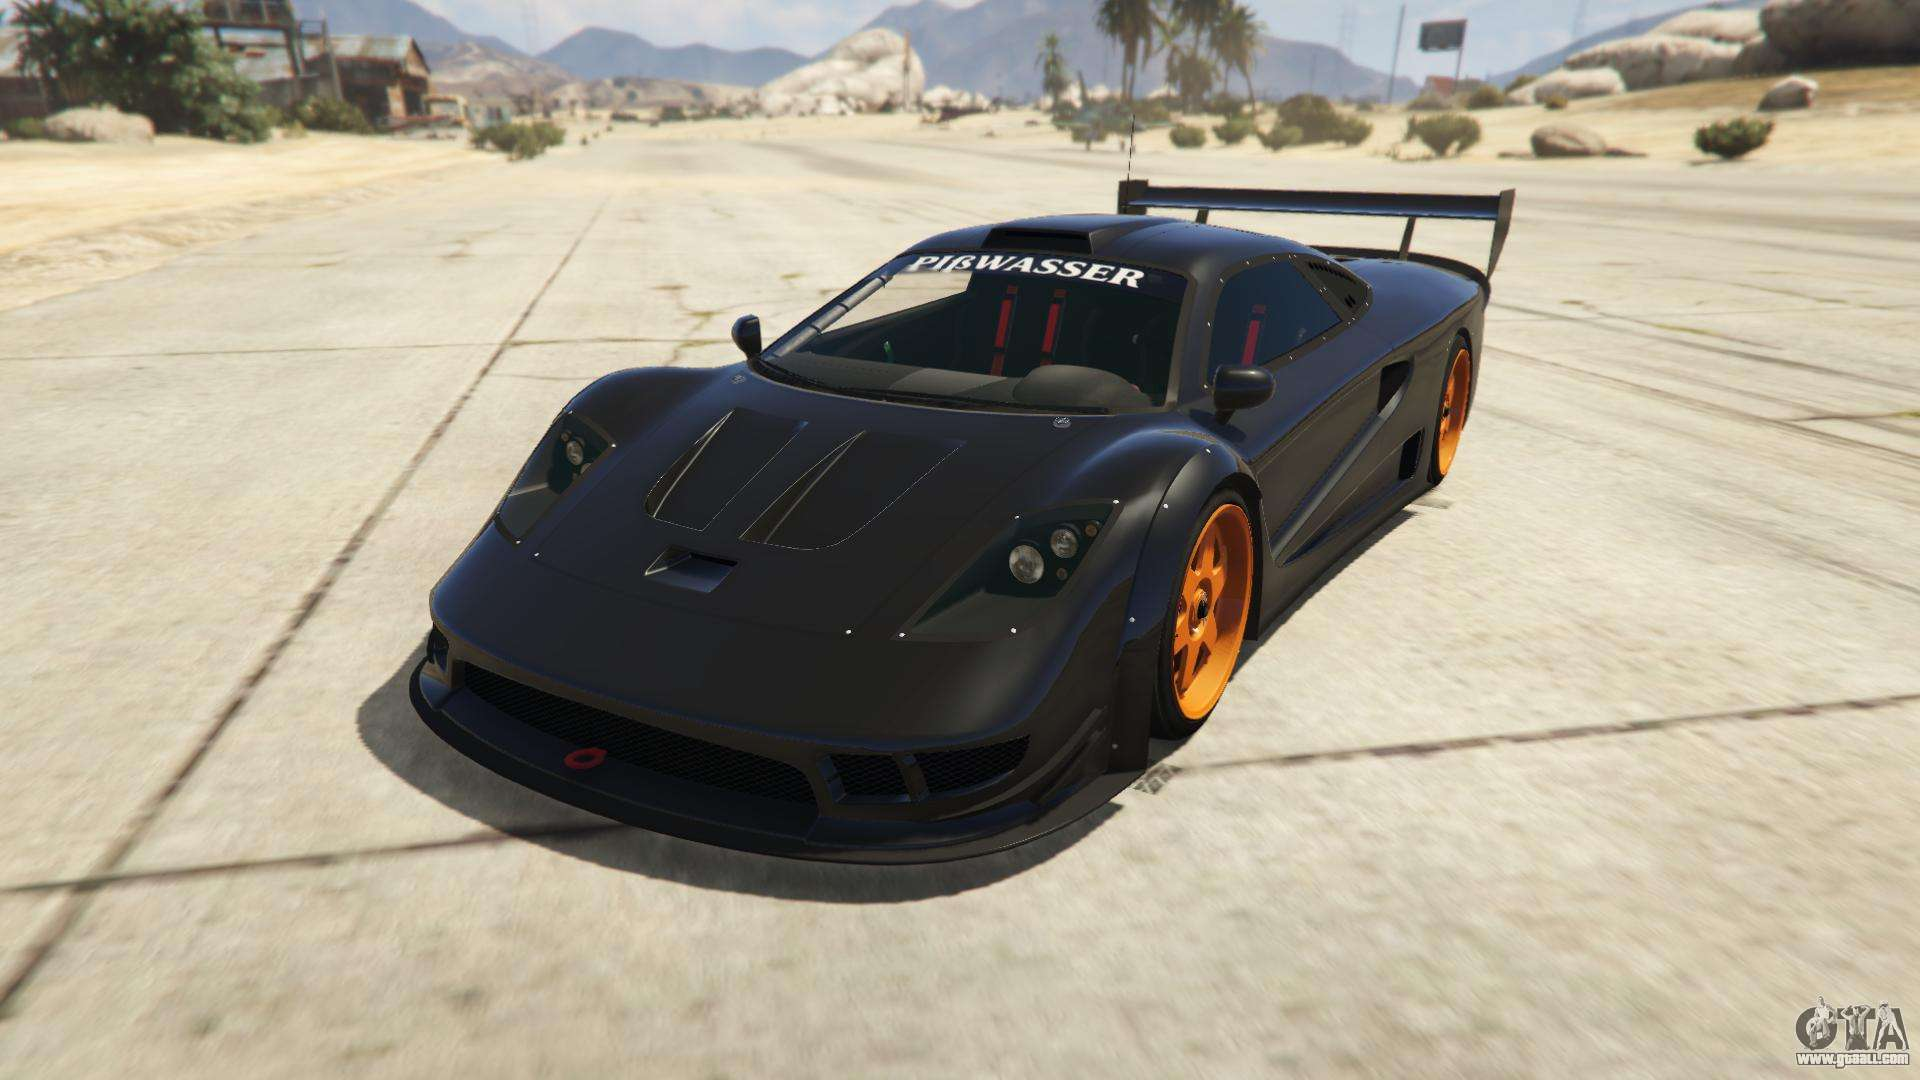 Progen Tyrus from GTA Online - front view